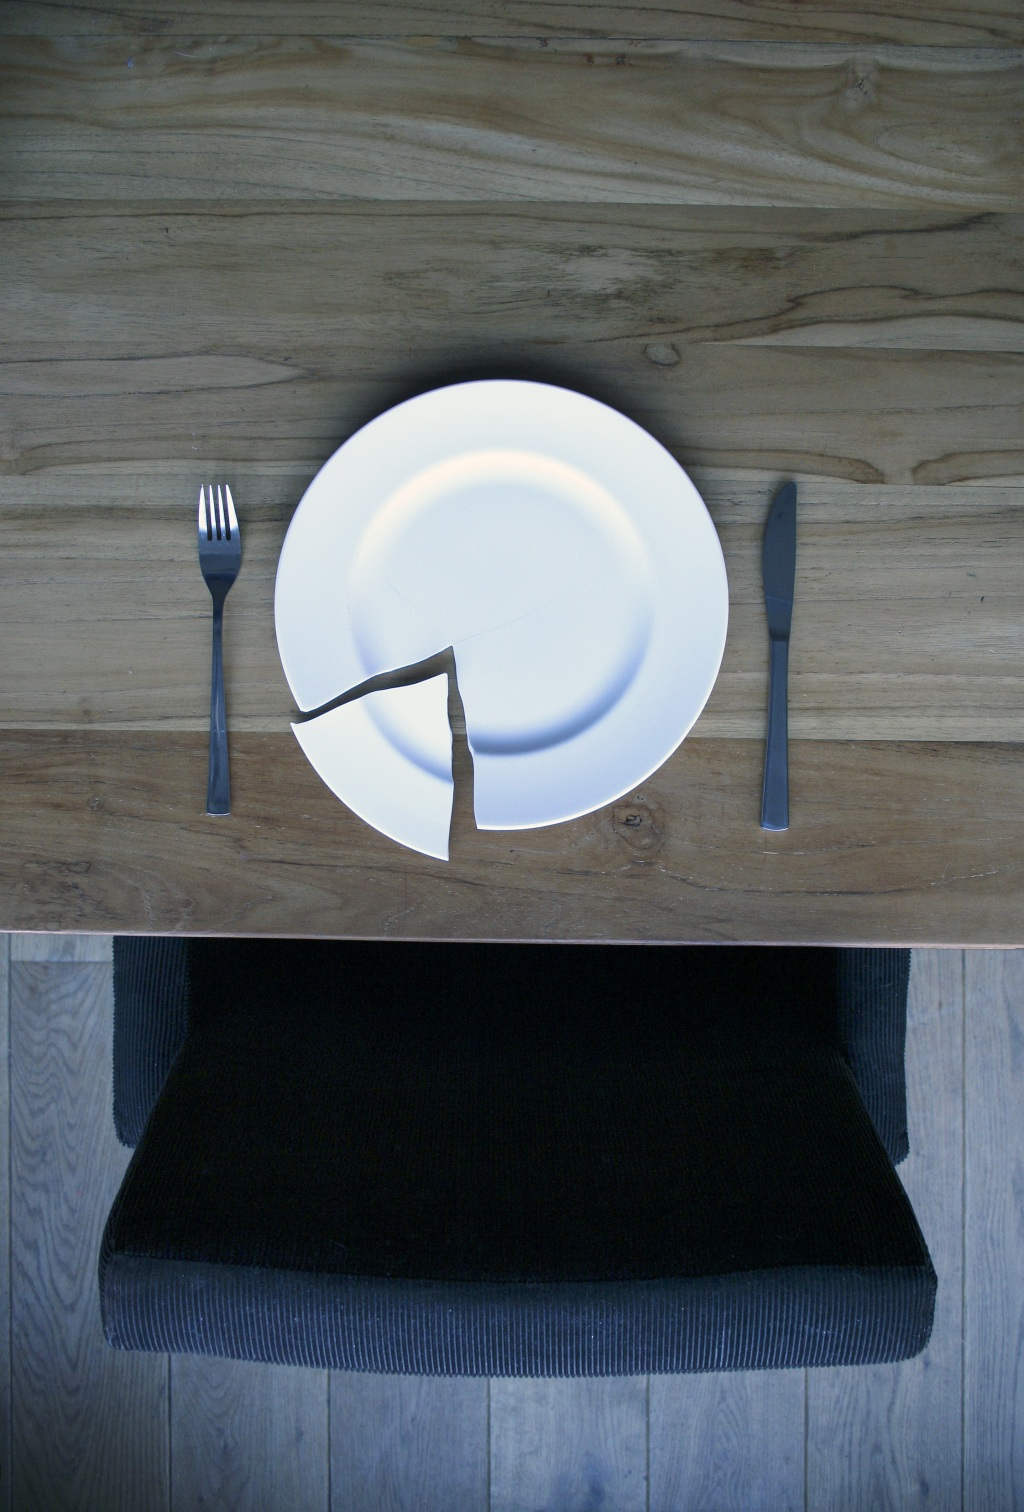 broken-plate-on-a-wooden-table-840112